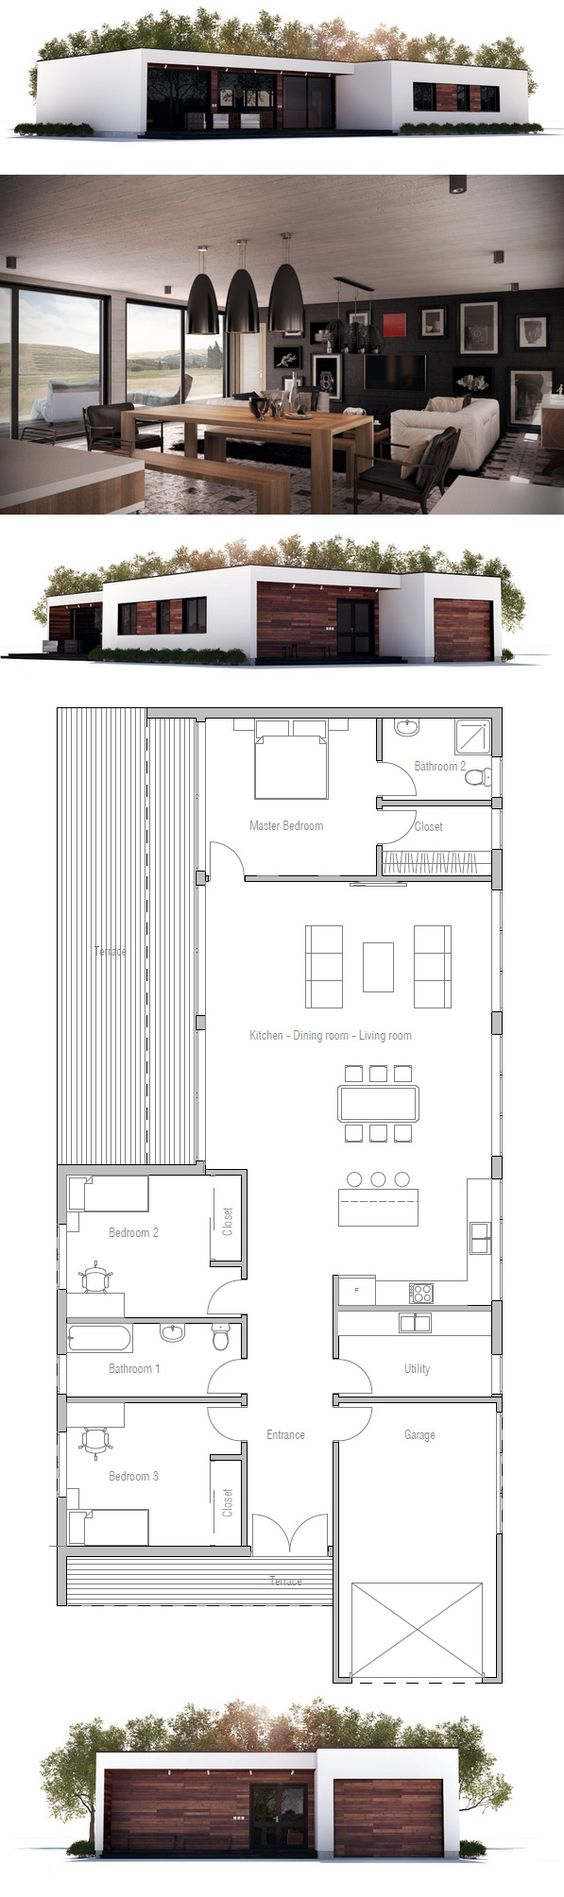 Interesting layout surprise bedroom at the back utility for Minimalist narrow house plans